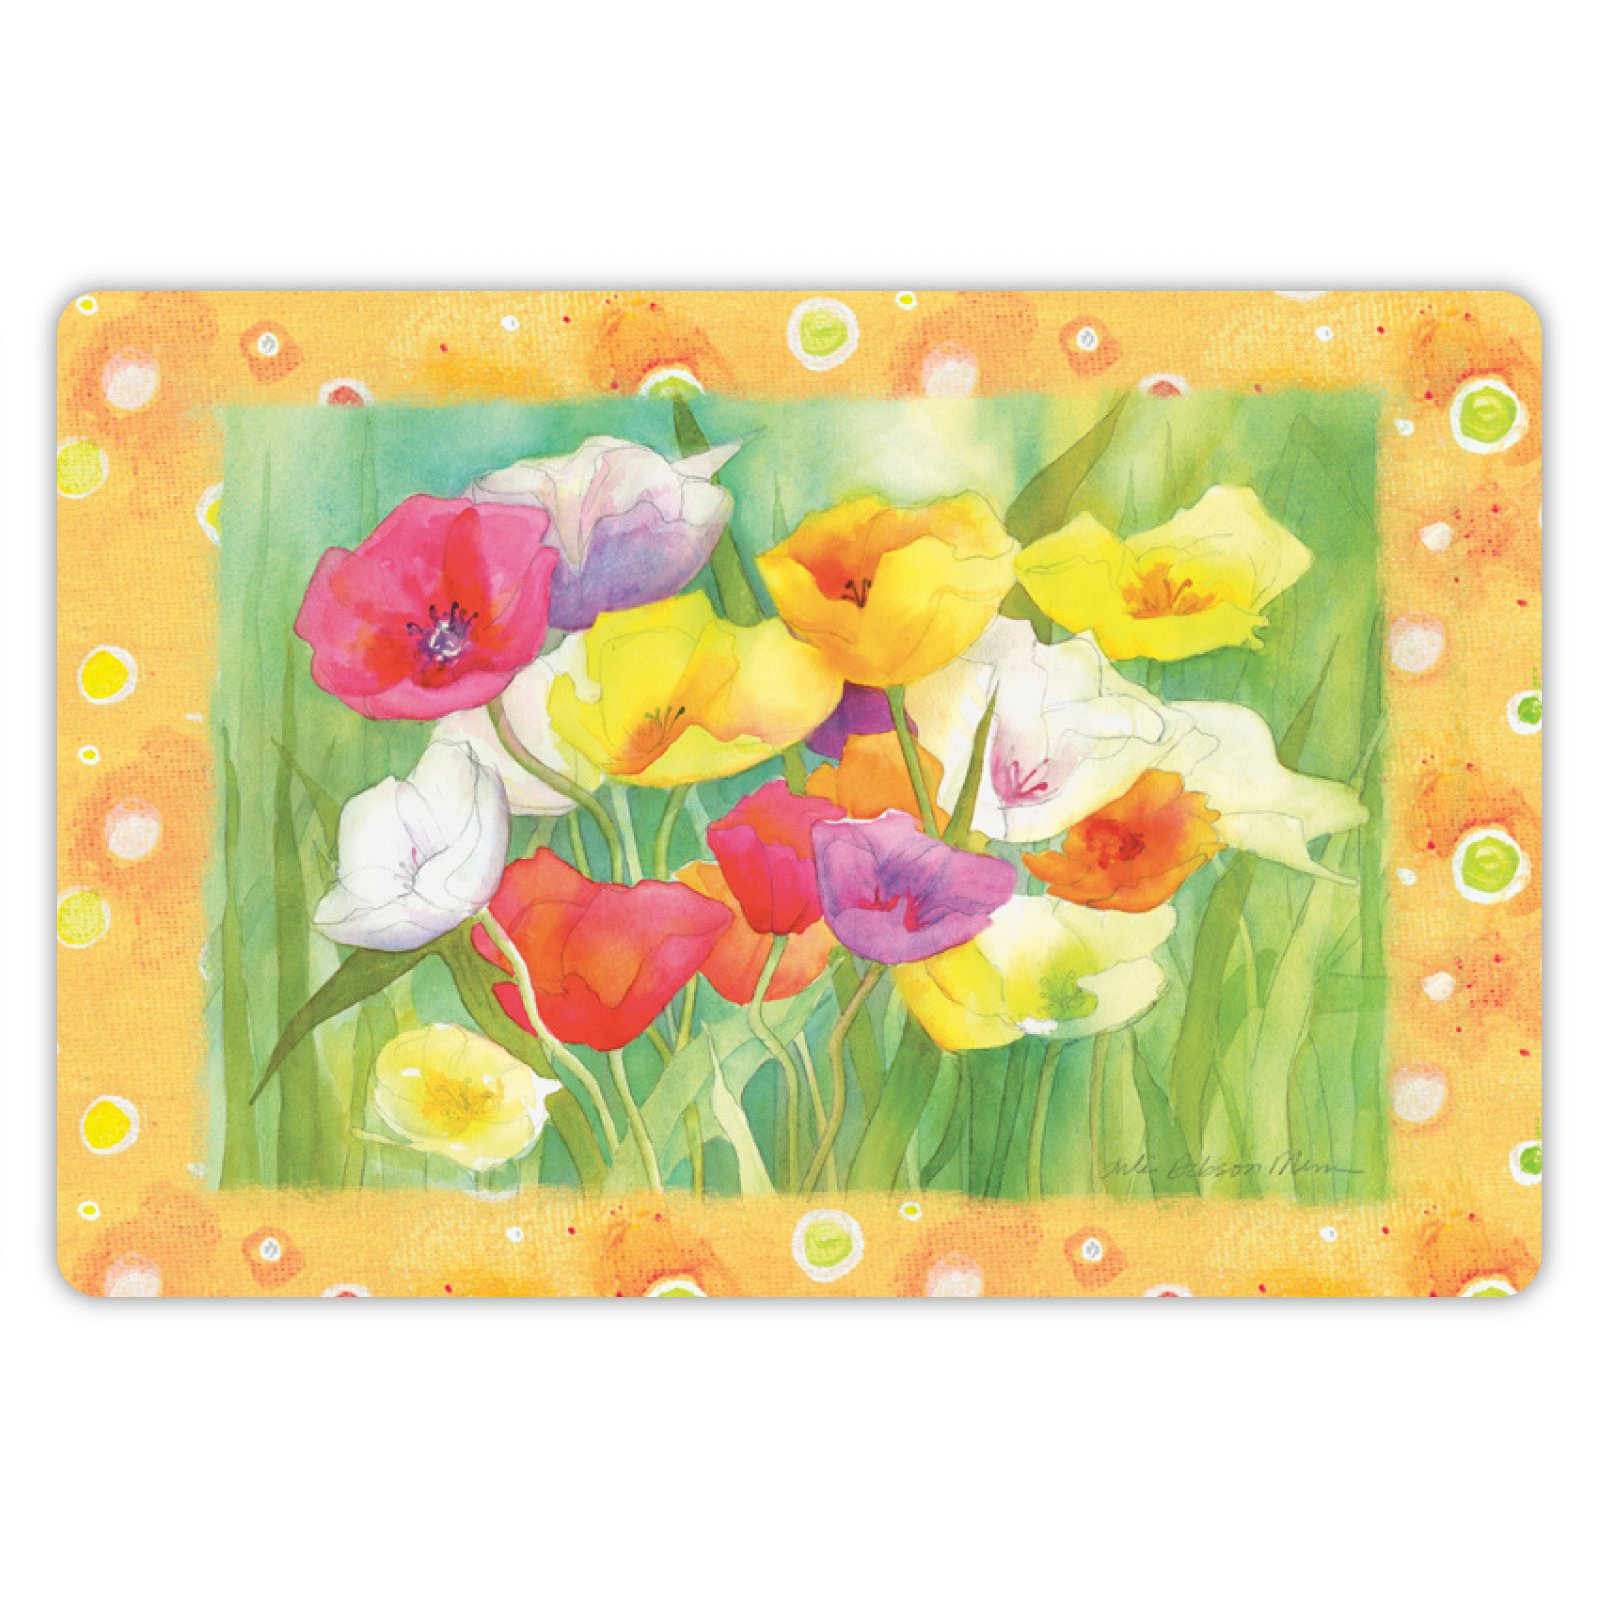 Drymate Spring/Summer Collection Welcome Mat - Poppies